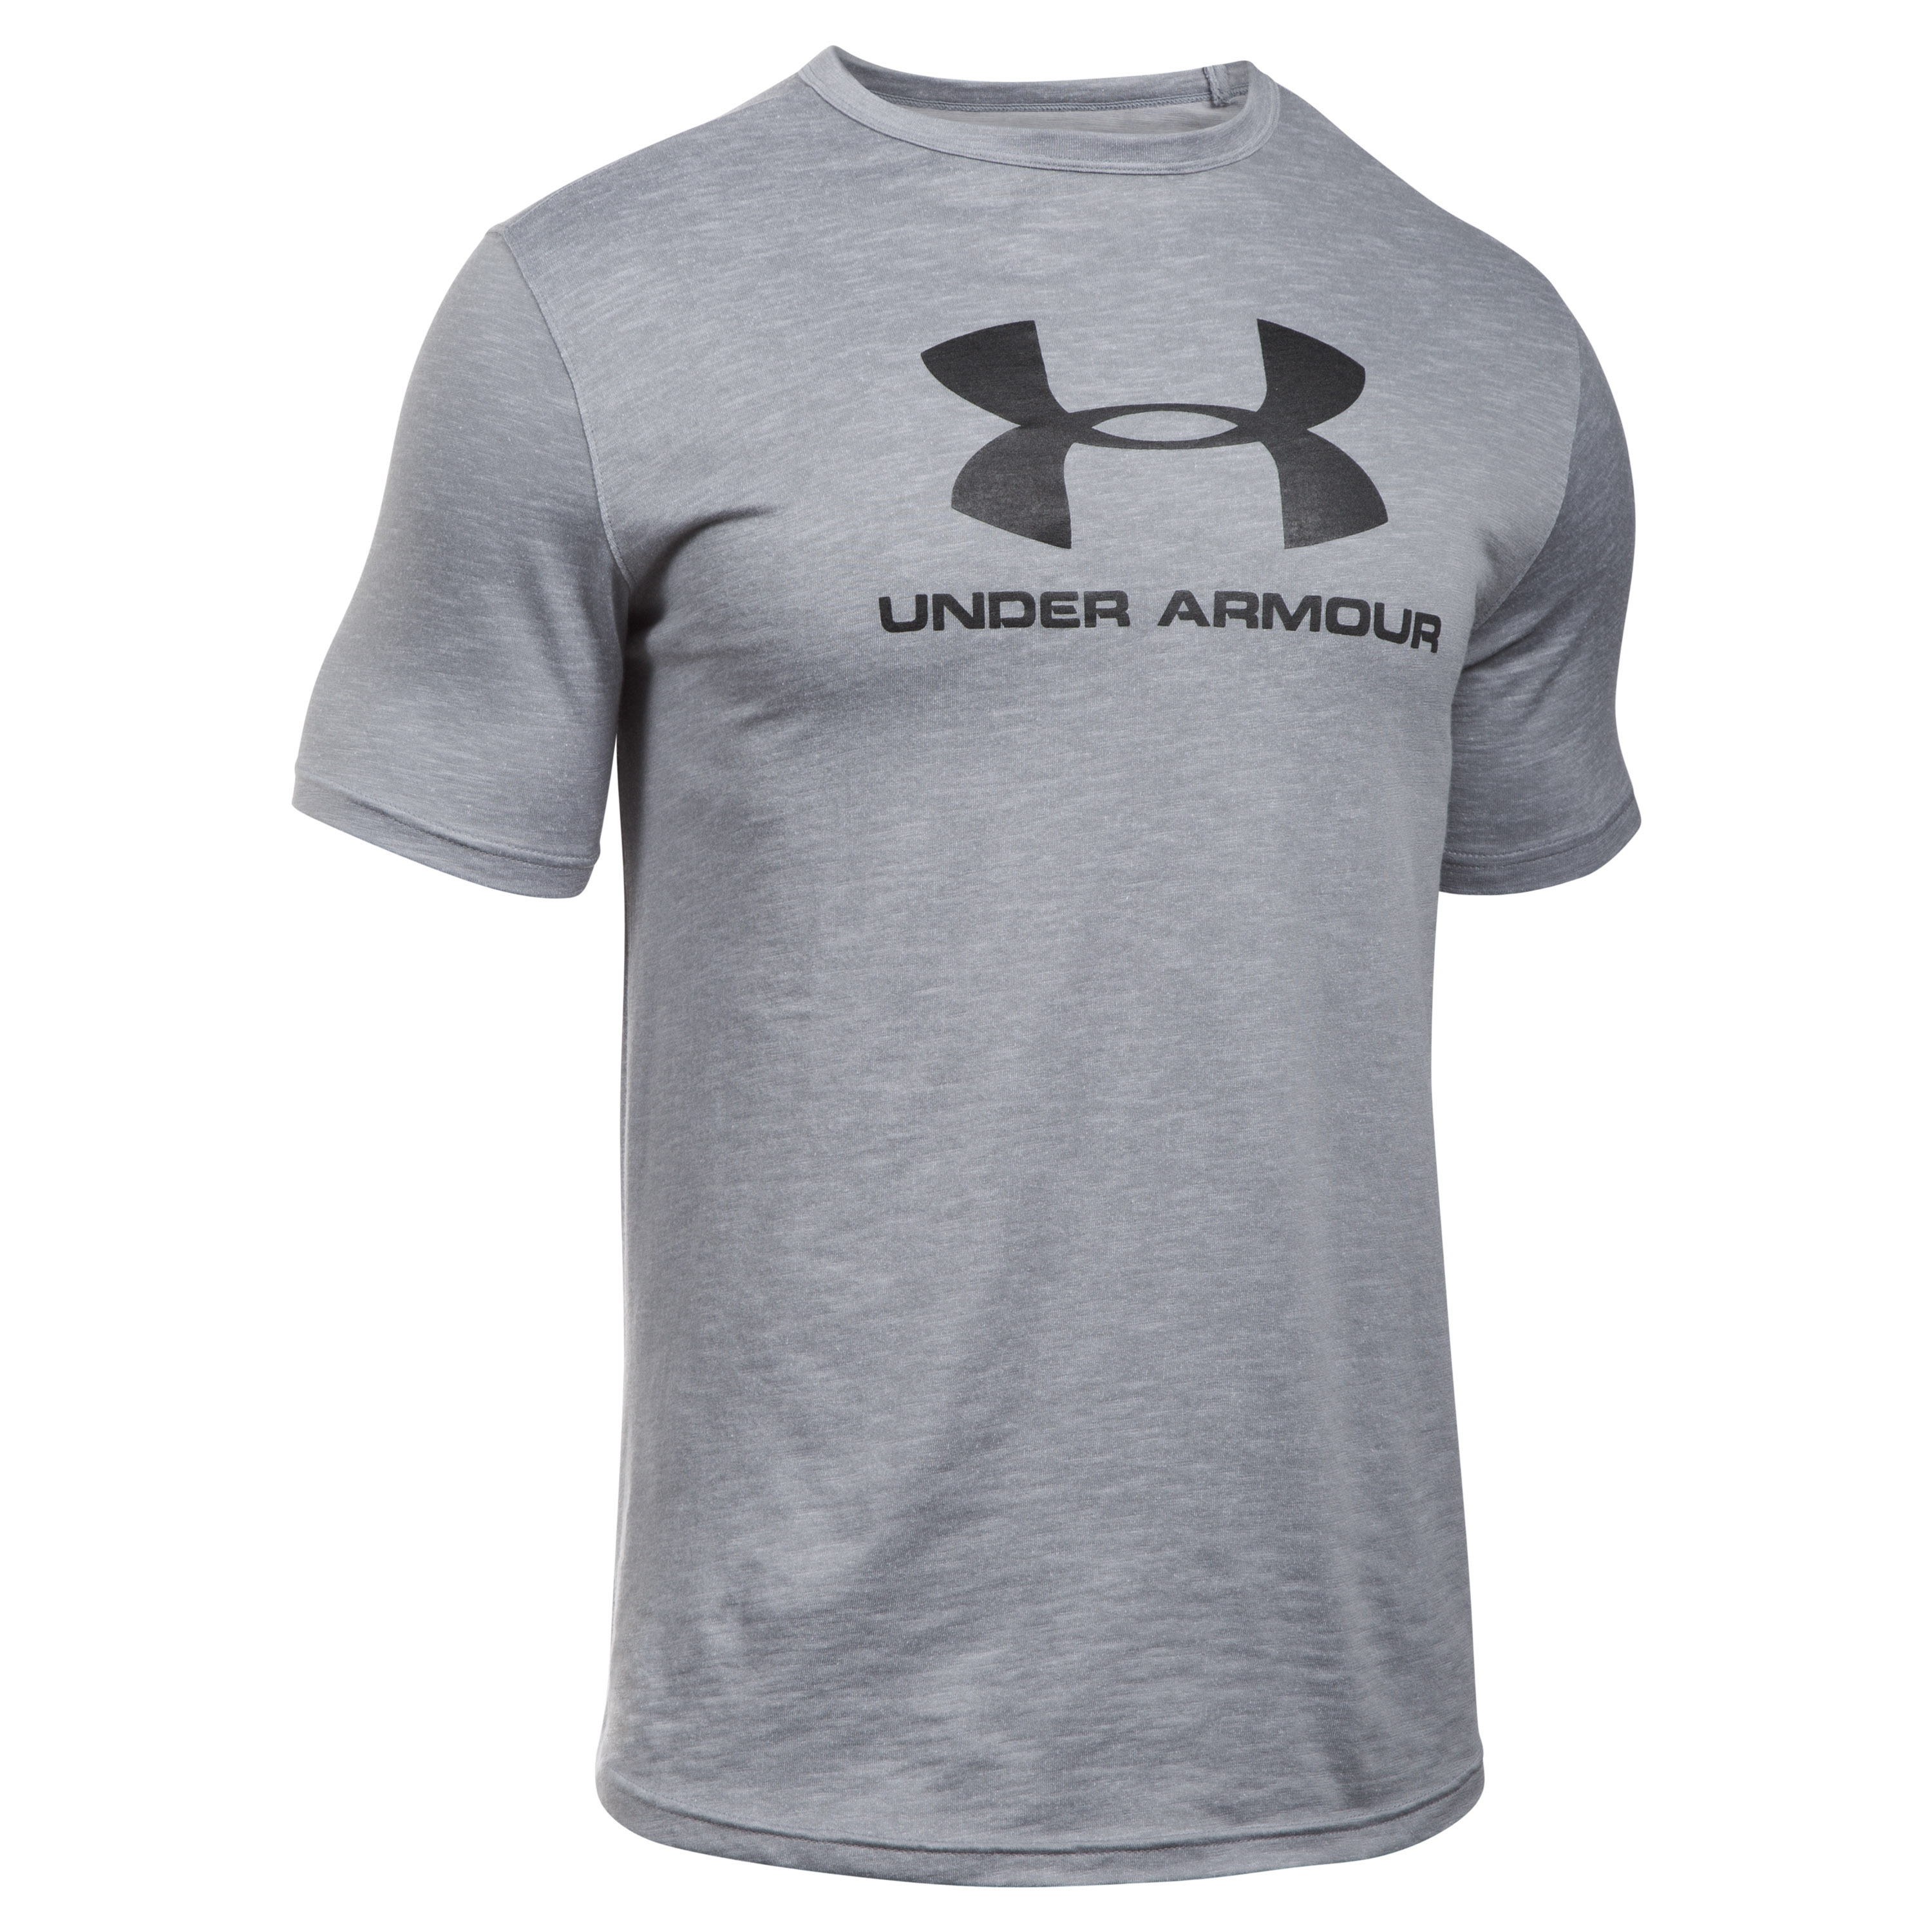 Under Armour Fitness T-Shirt Sport Style Branded Tee gray